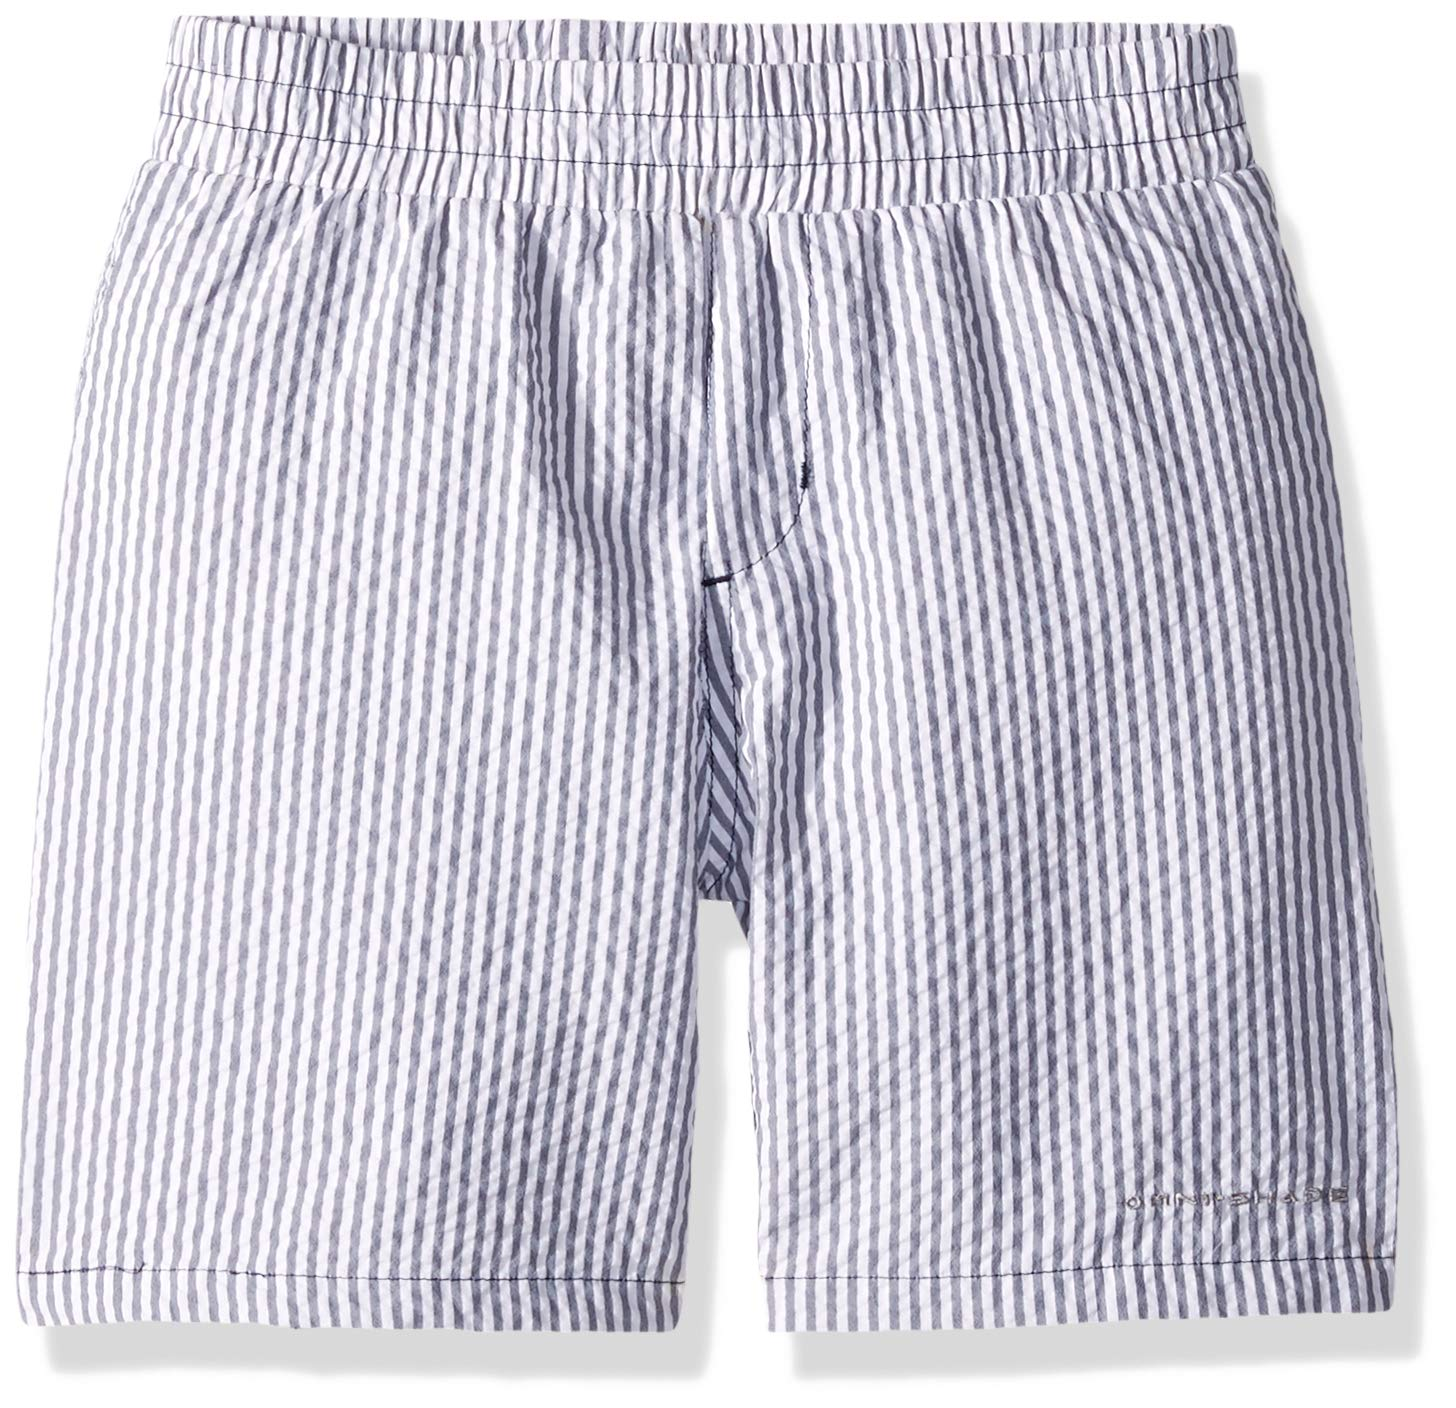 Columbia Youth Boys' PFG Super Backcast Short, Collegiate Navy Seersucker,Medium,Big Boys